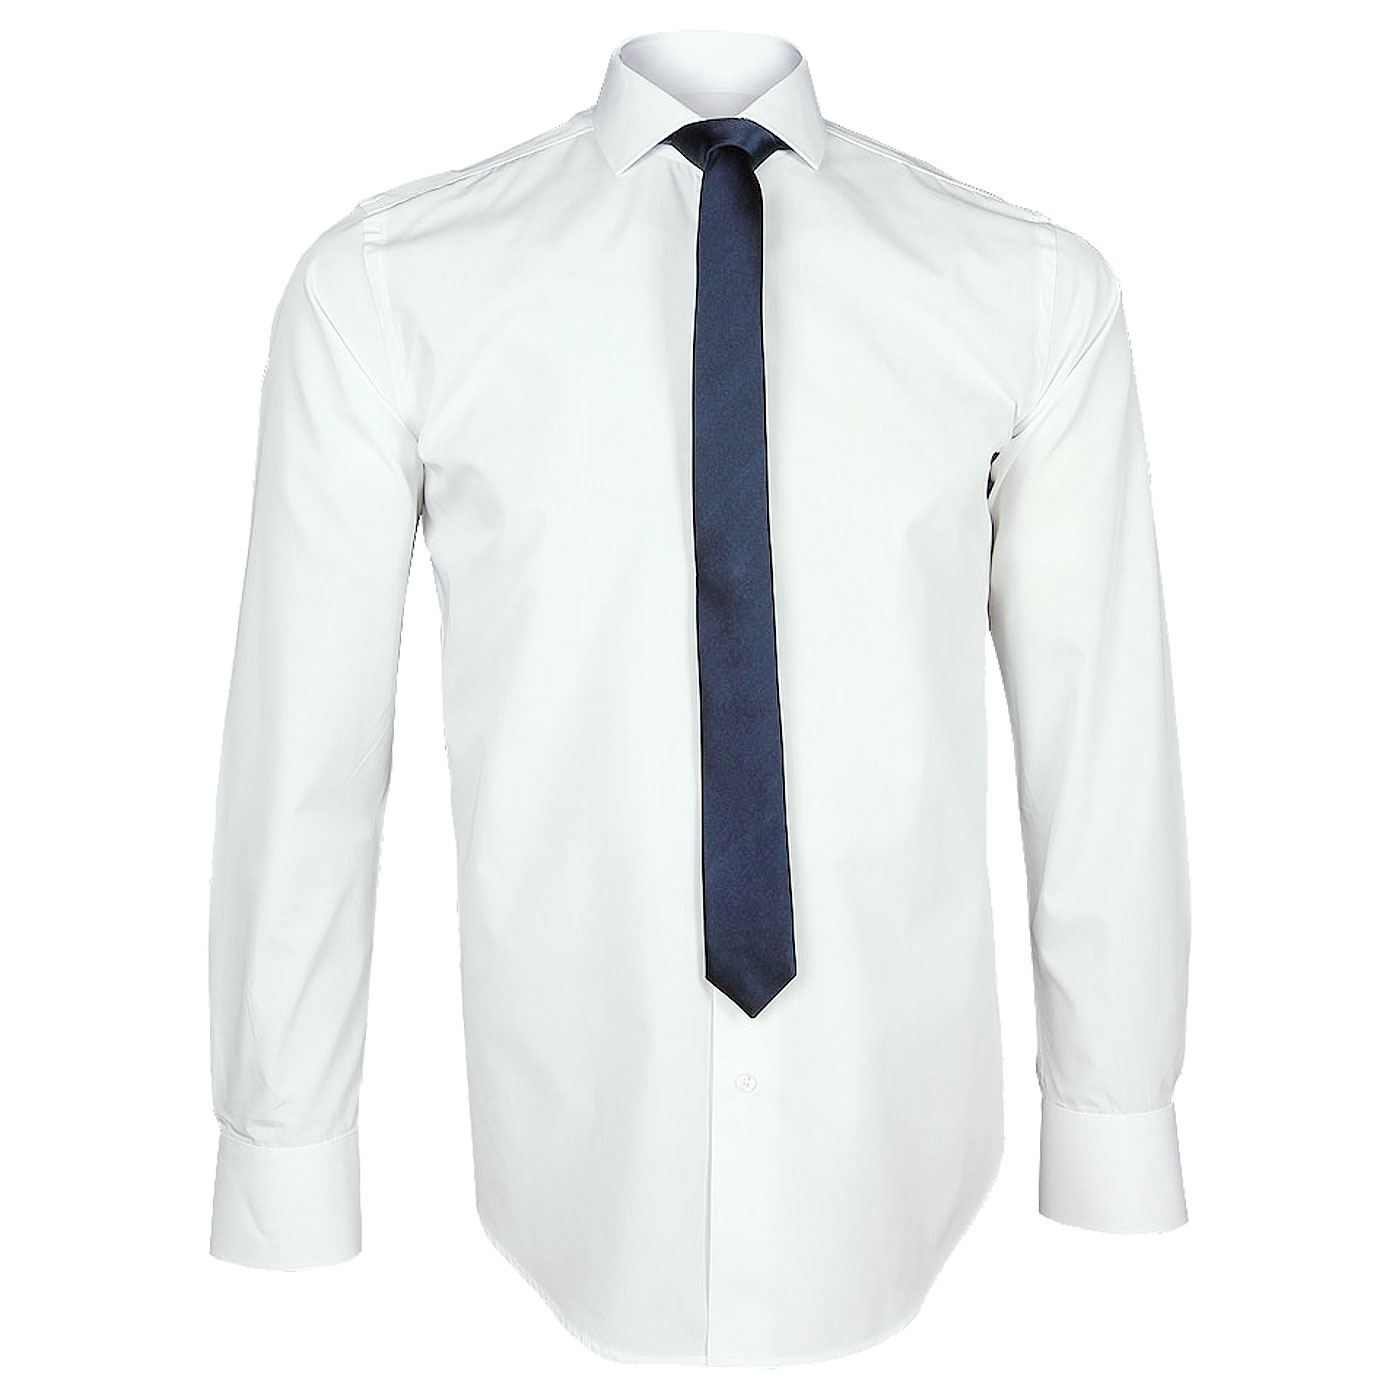 White Shirt Premium: the essential for your wardrobe